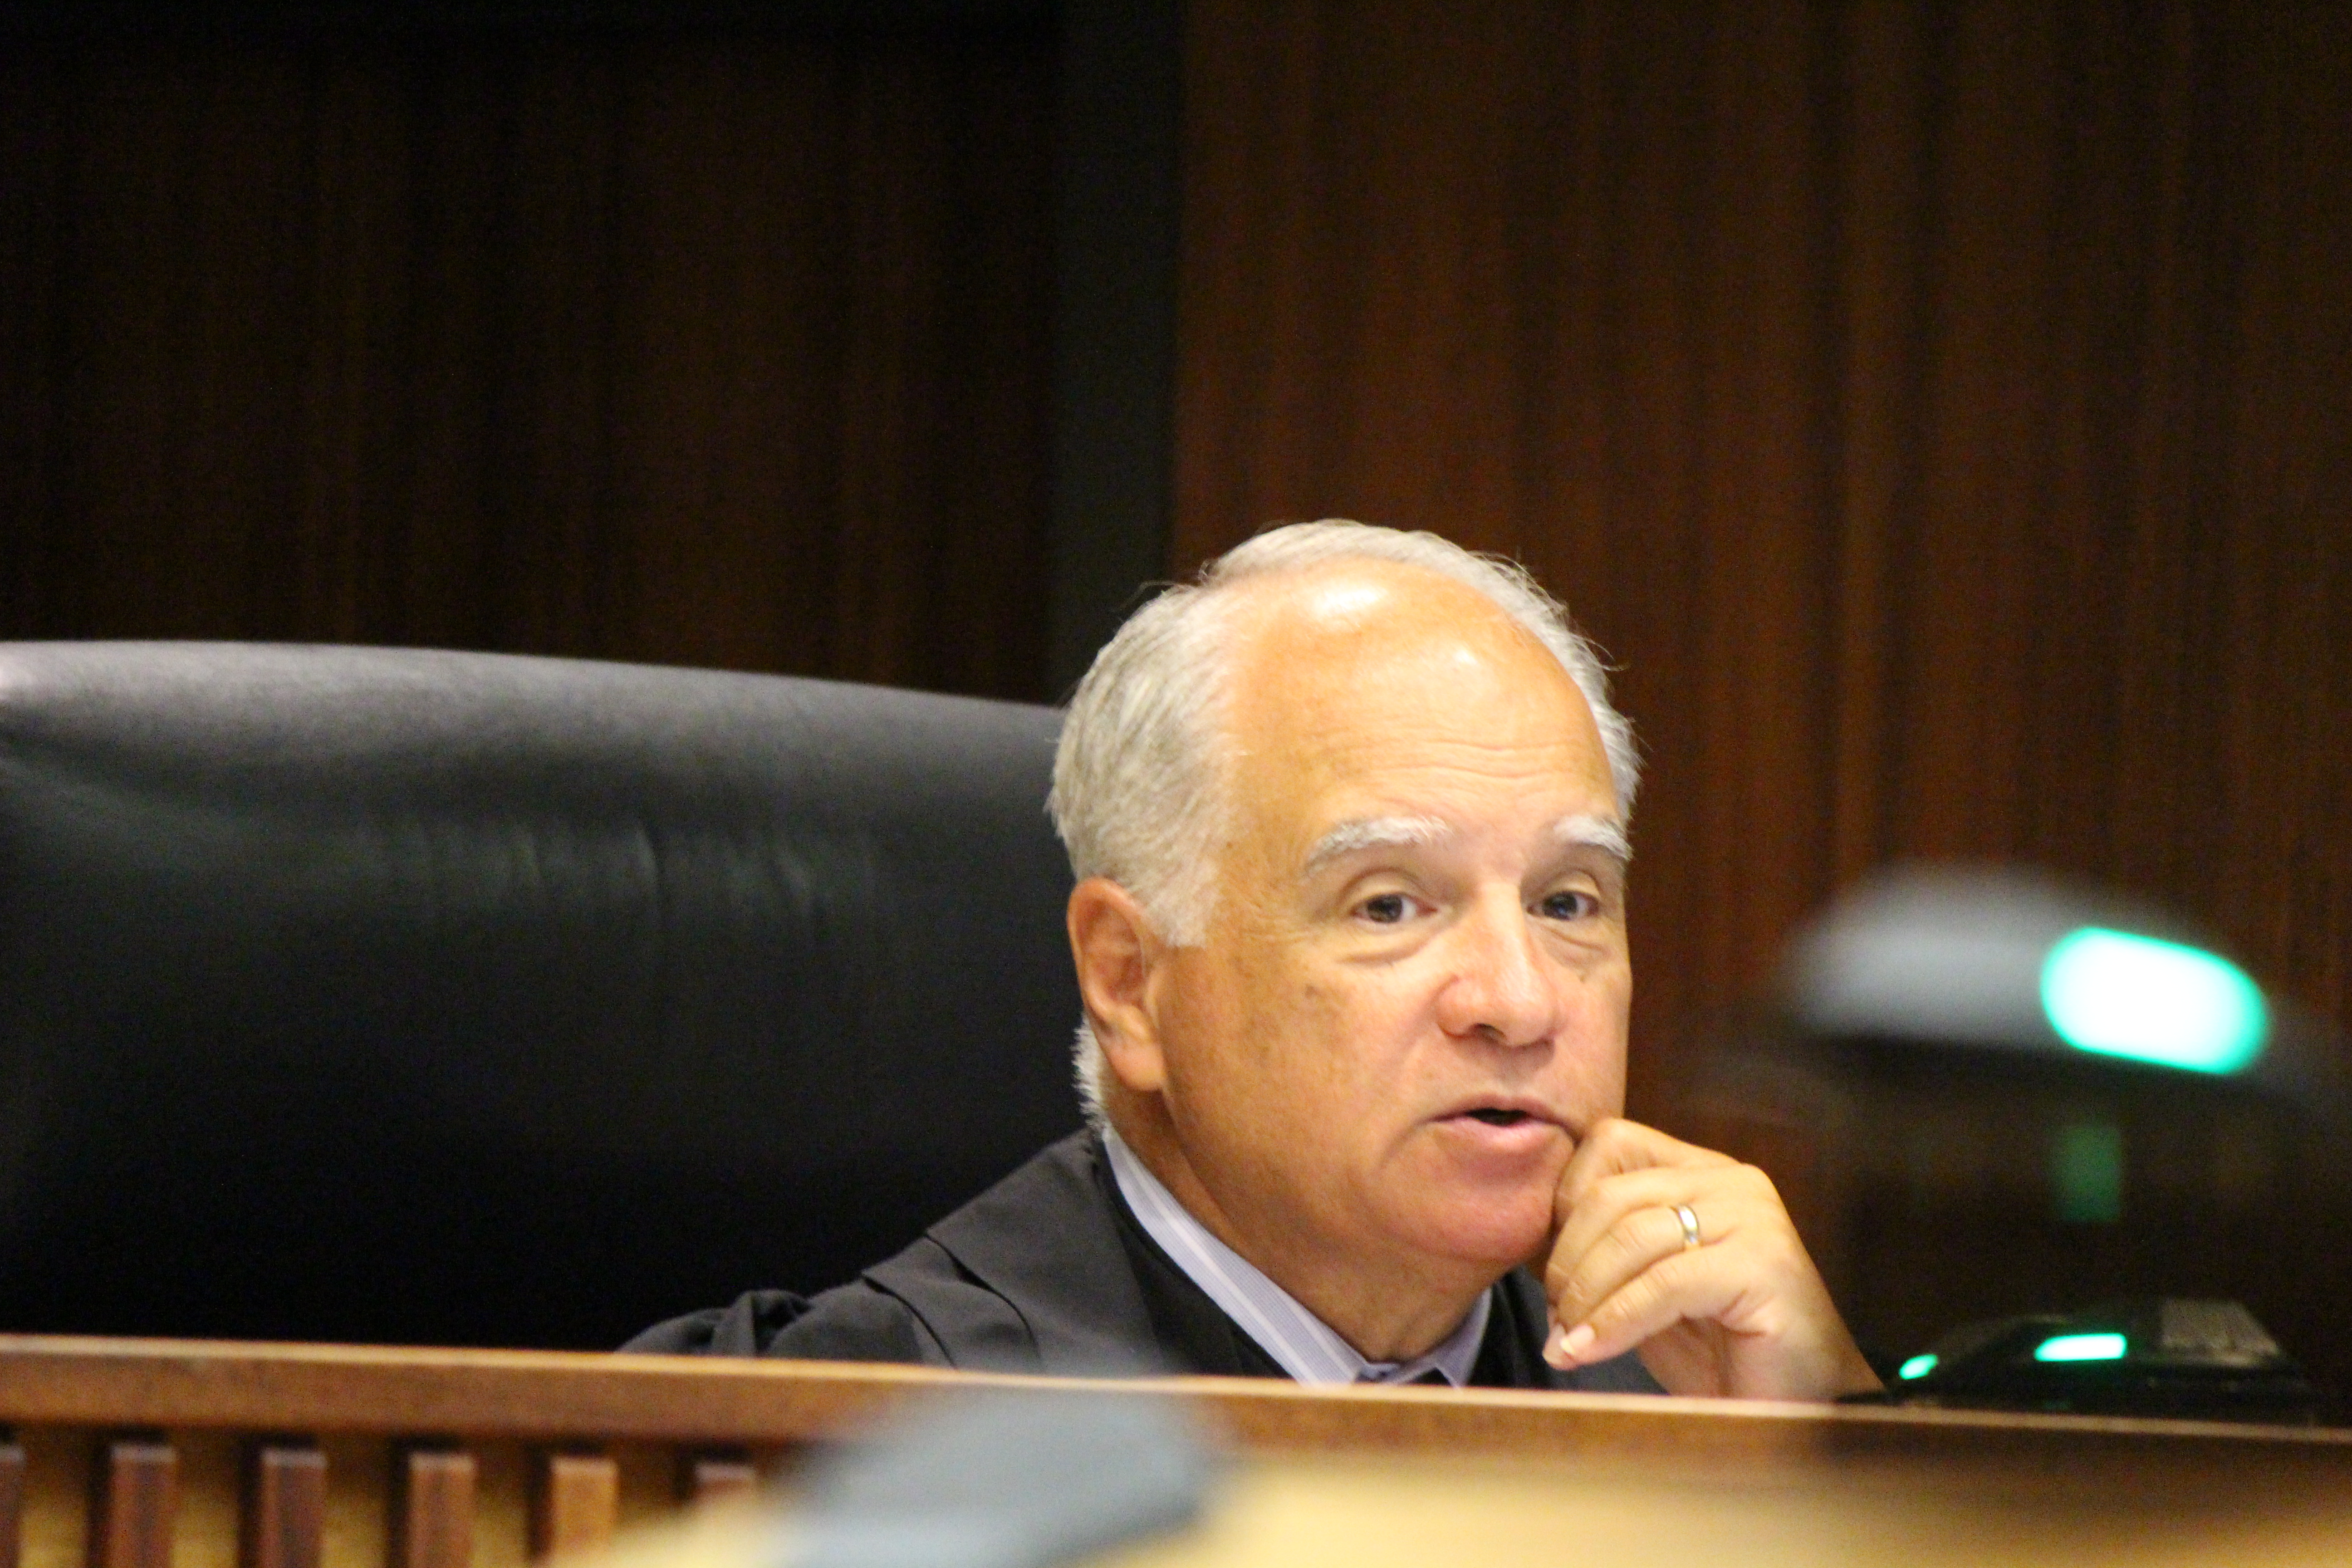 Judge Joseph Cardoza (6.27.16) Photo by Wendy Osher.